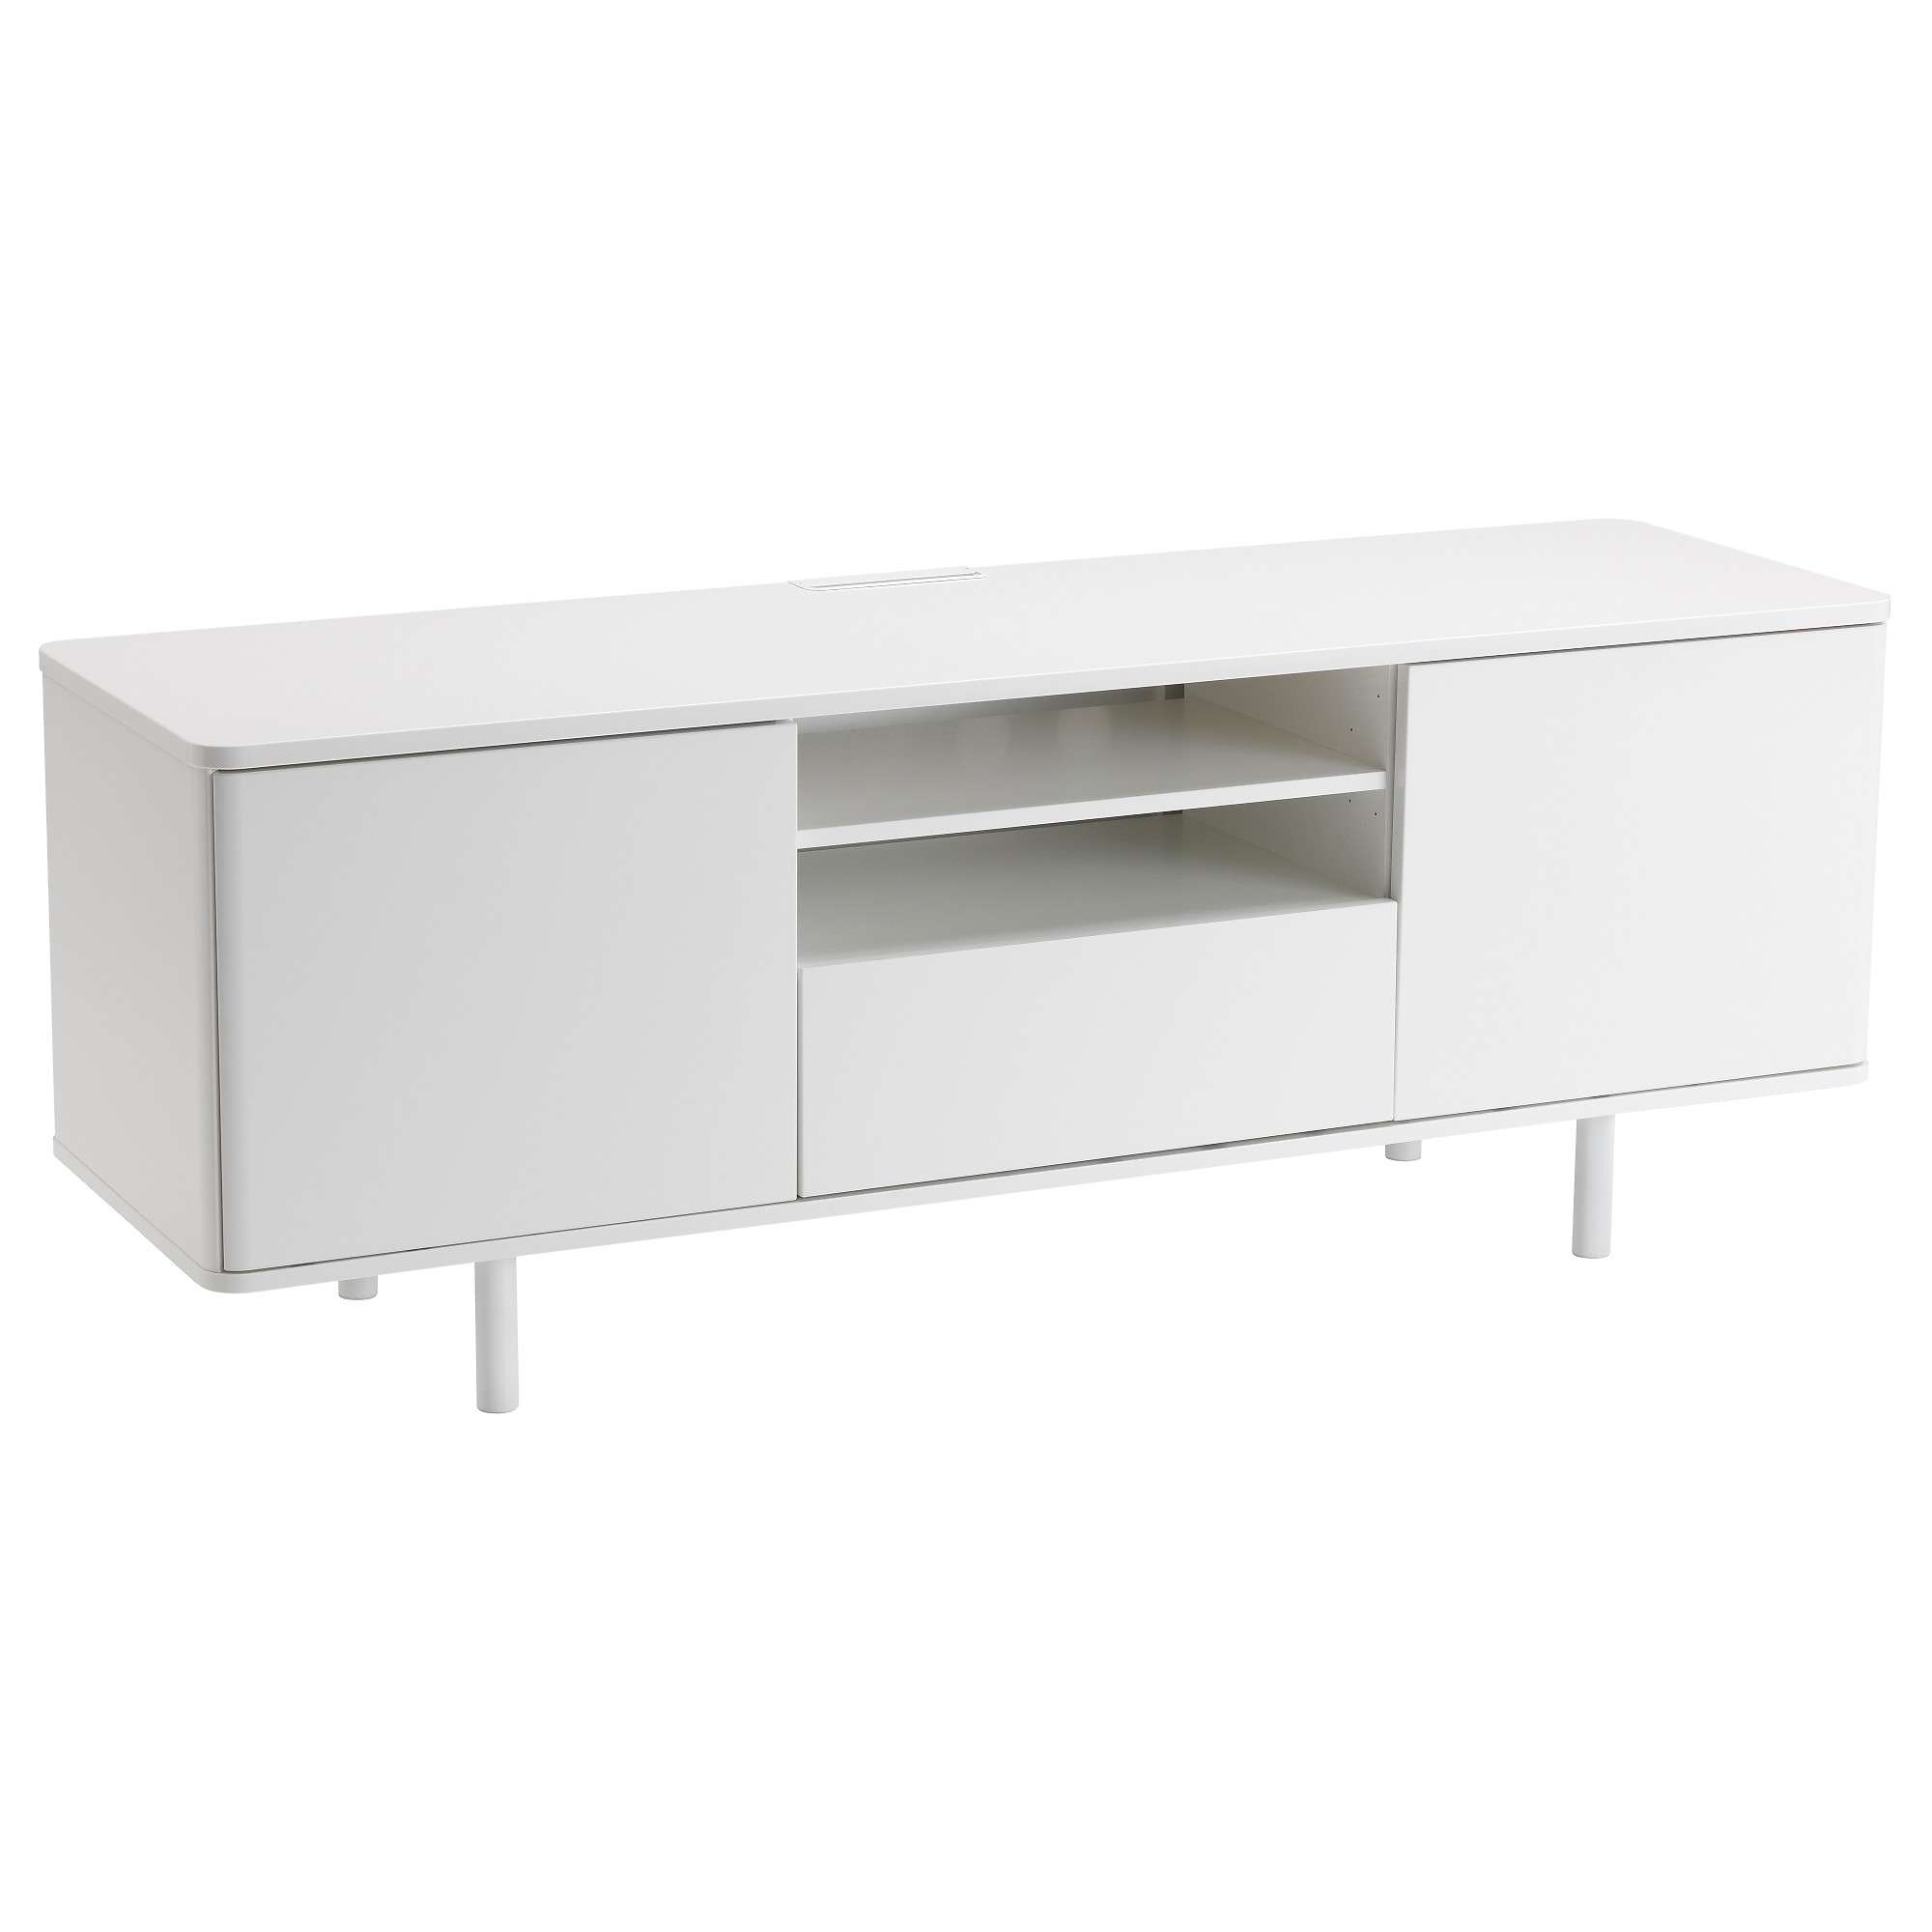 Mostorp Tv Bench White 159X46 Cm – Ikea Throughout White Gloss Tv Stands With Drawers (View 9 of 15)